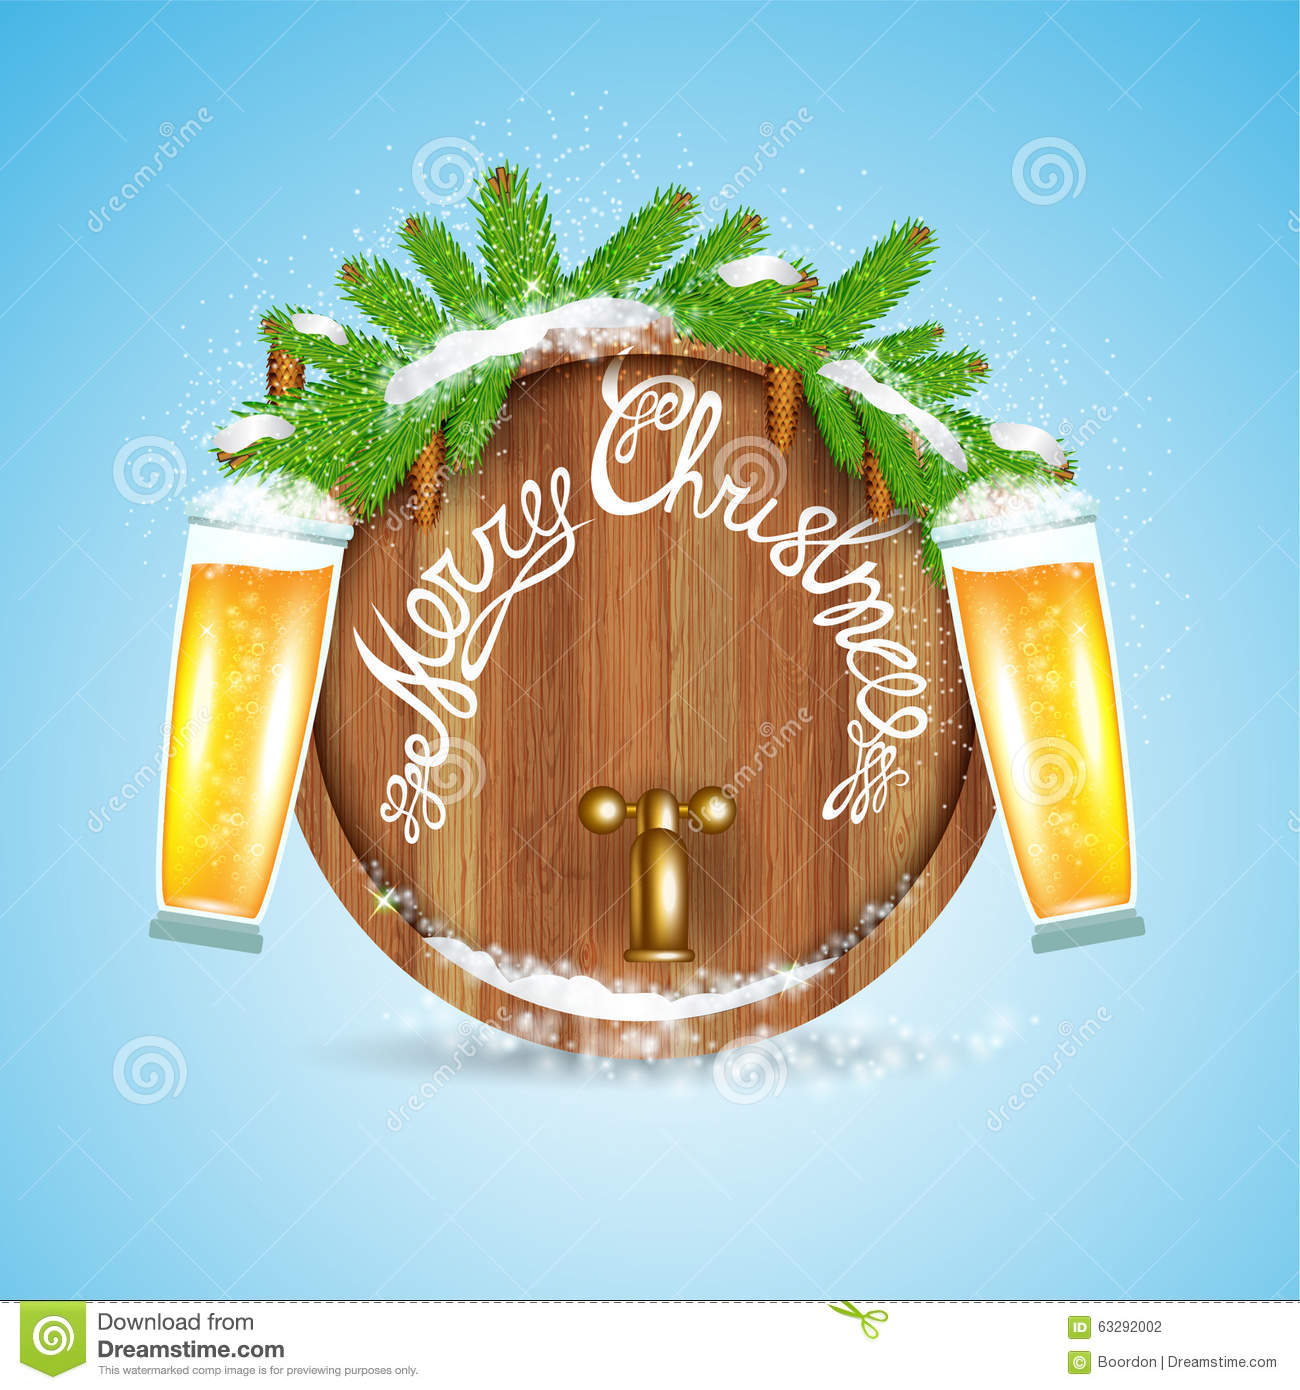 Christmas lettering on wood barrel with snowy fir tree branch and beer of glass